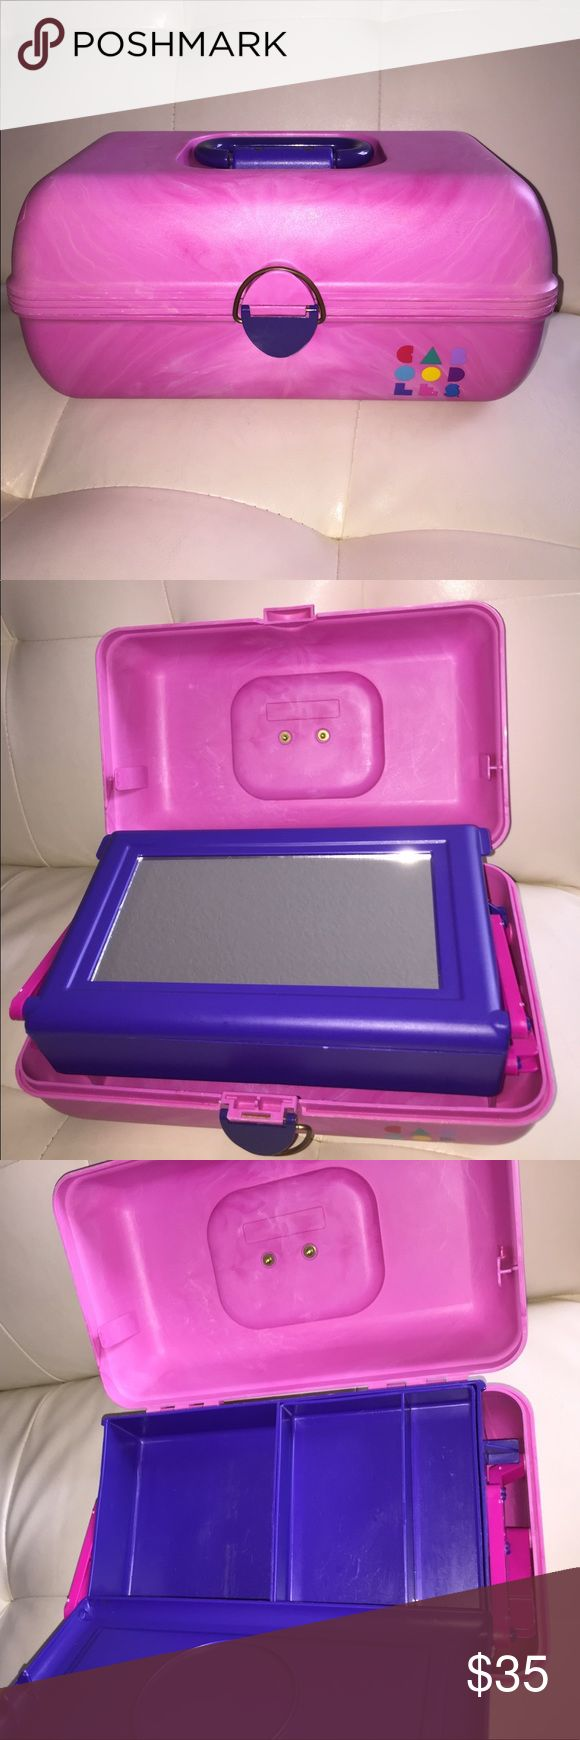 Vintage Caboodles makeup case 🆕📣 Vintage Caboodles makeup case                               One auto open tray Flip lid with mirror Removable accessory tray Spacious interior storage Secure latch                                                                           Colors pink and purple                                                            Great condition with minor wear which is shown in the picture. Caboodles Other